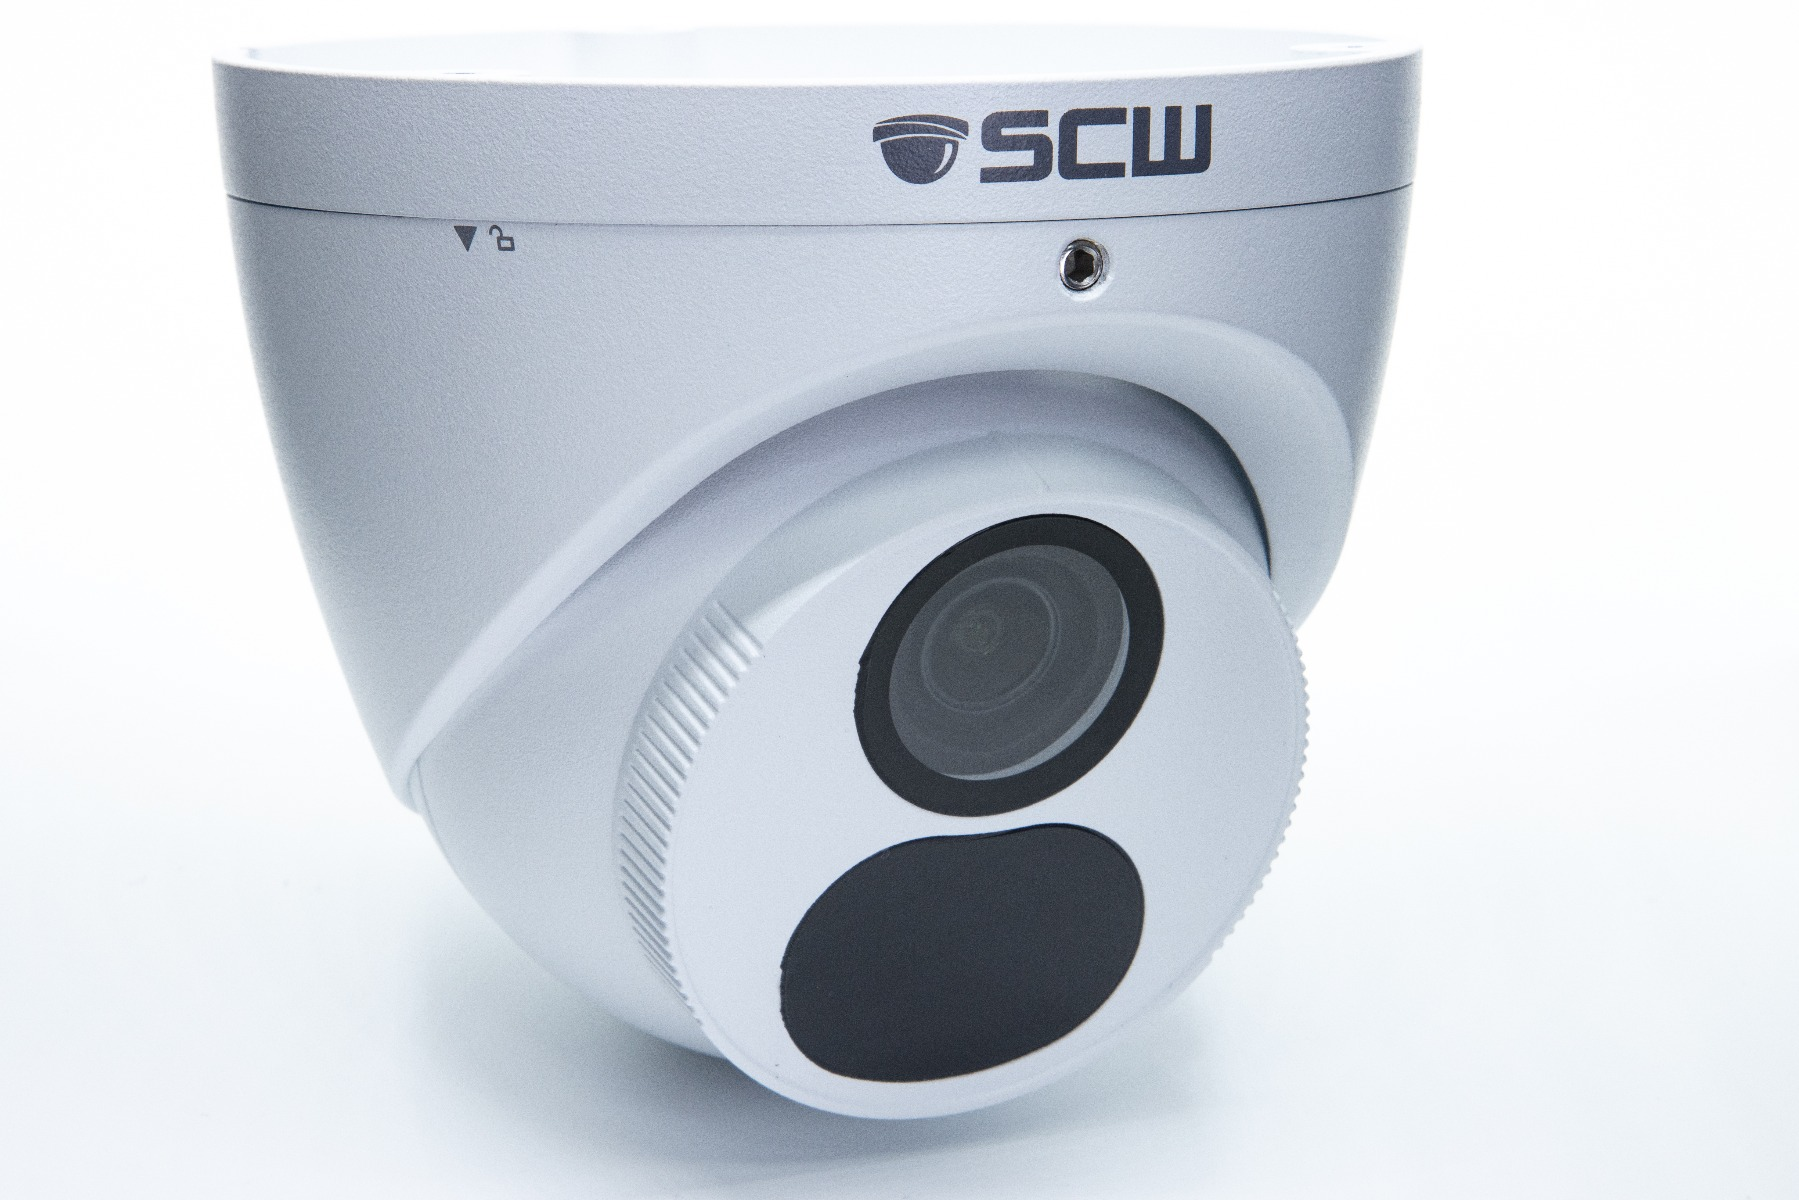 The Deputy 8.0 v2 - 26DF8M - 4K (8MP = 4x1080P) Fixed Wide Angle Lens Turret Dome Camera